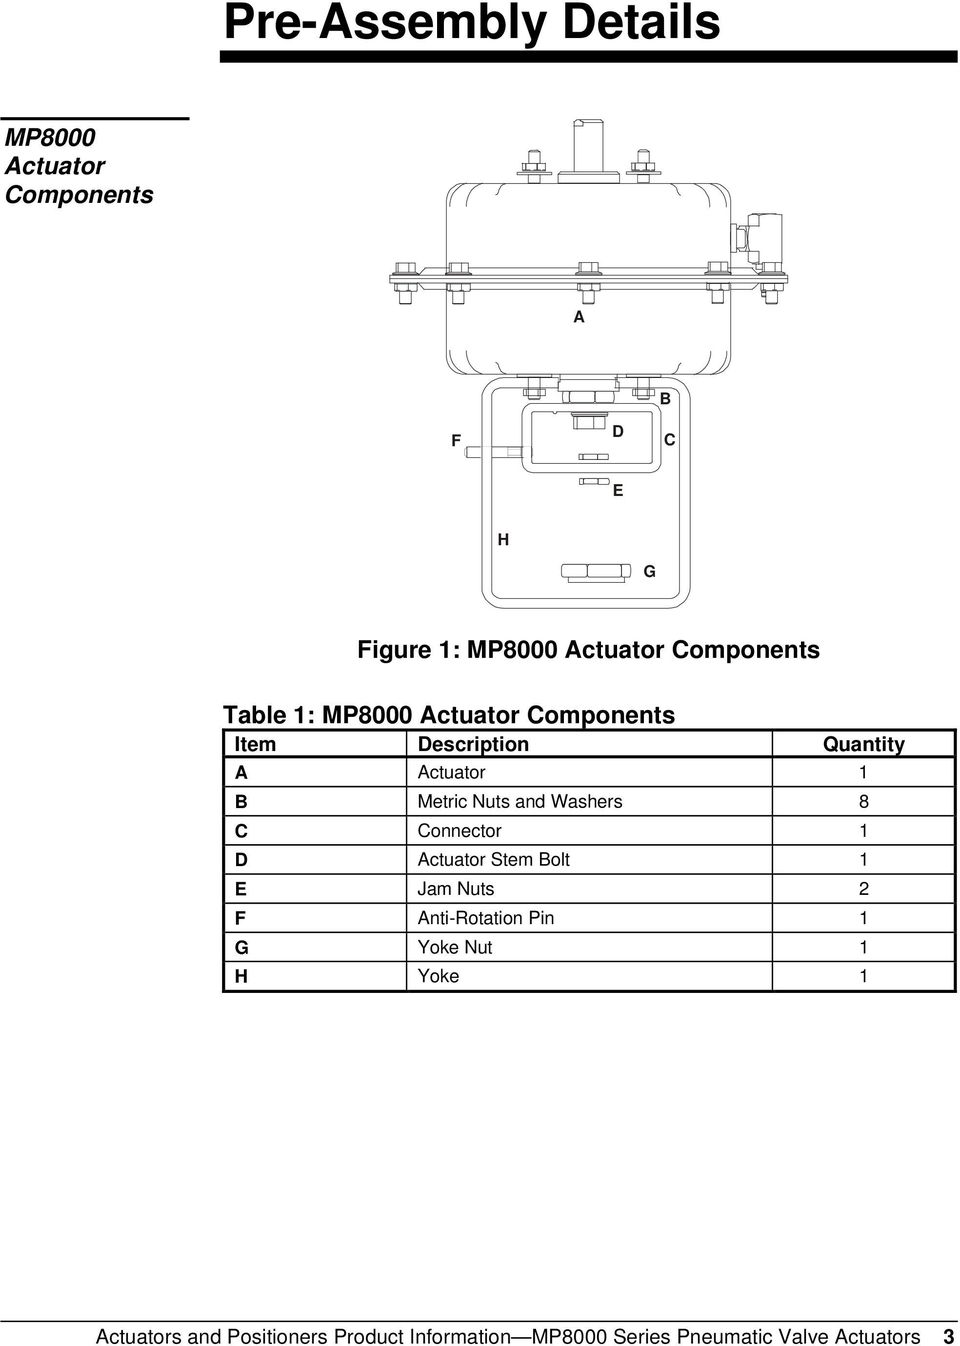 Triad Valve Actuators Wiring Diagrams Trusted Schematics Diagram Pneumatic Mp8000 Series Pdf